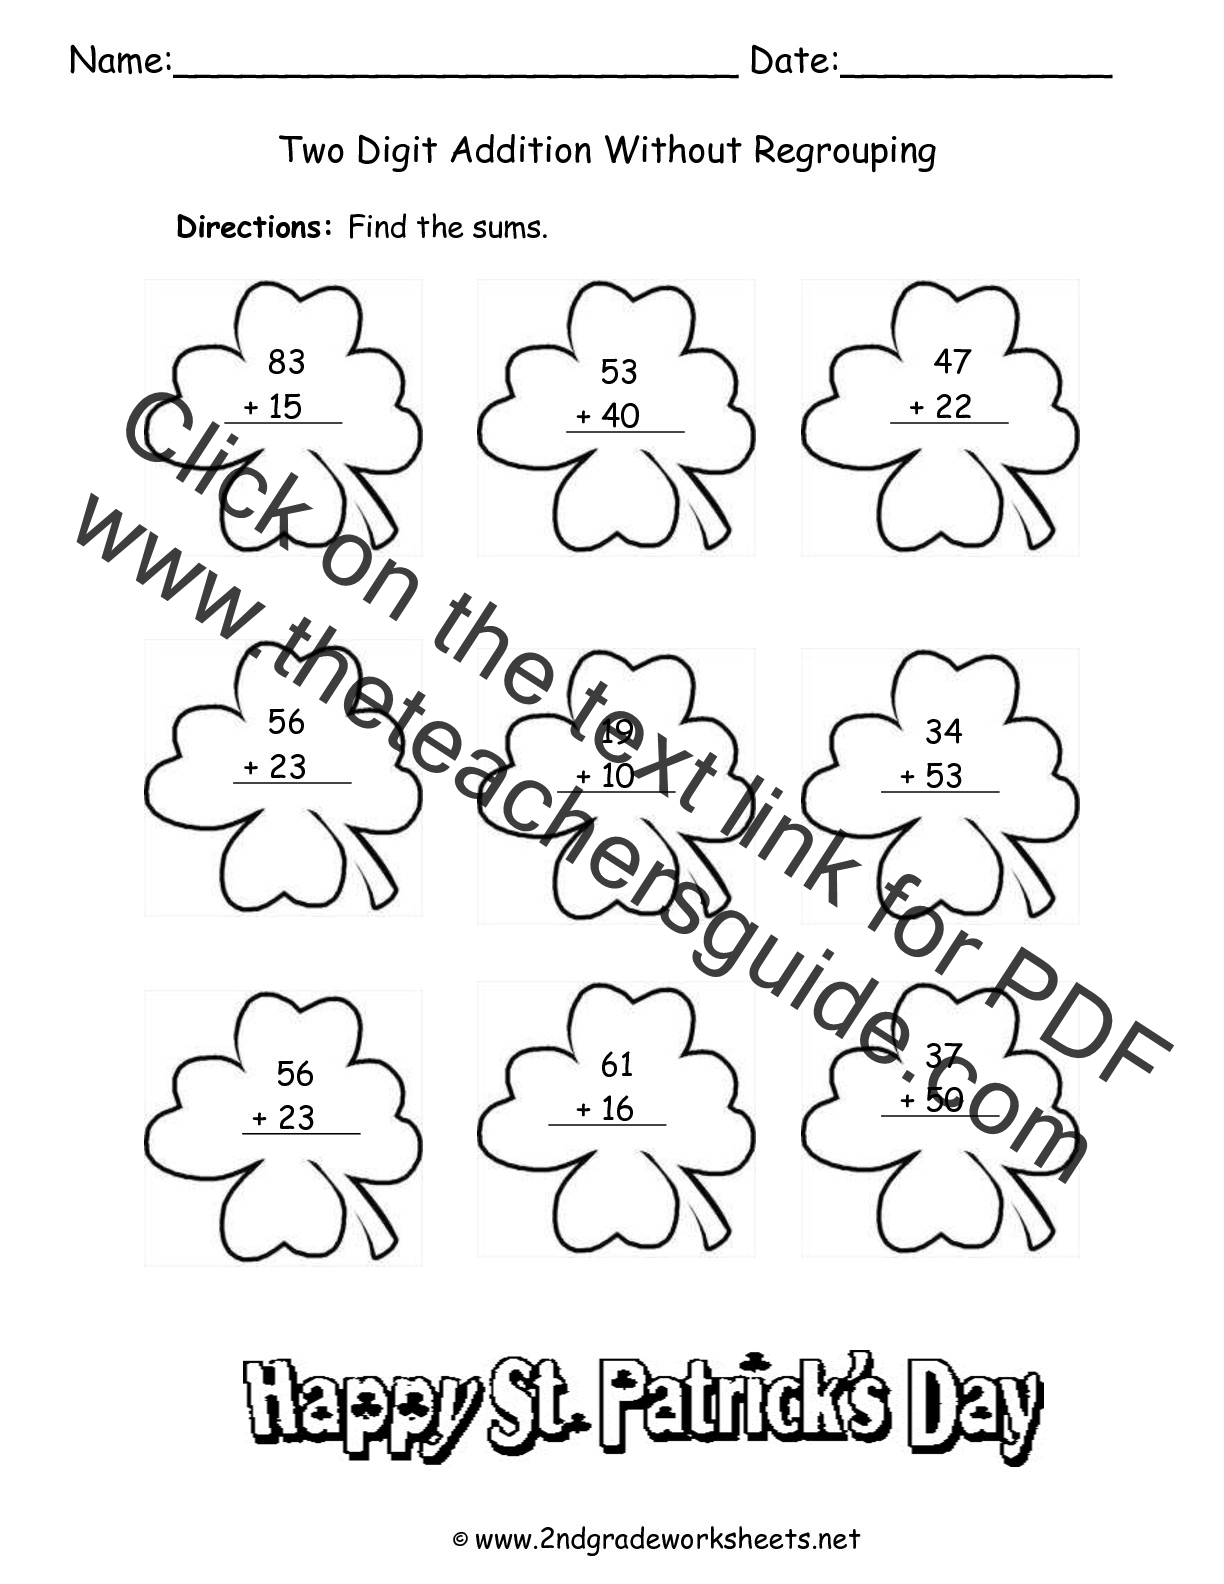 St Patricks Day Printouts and Worksheets – Double Digit Addition Without Regrouping Worksheets